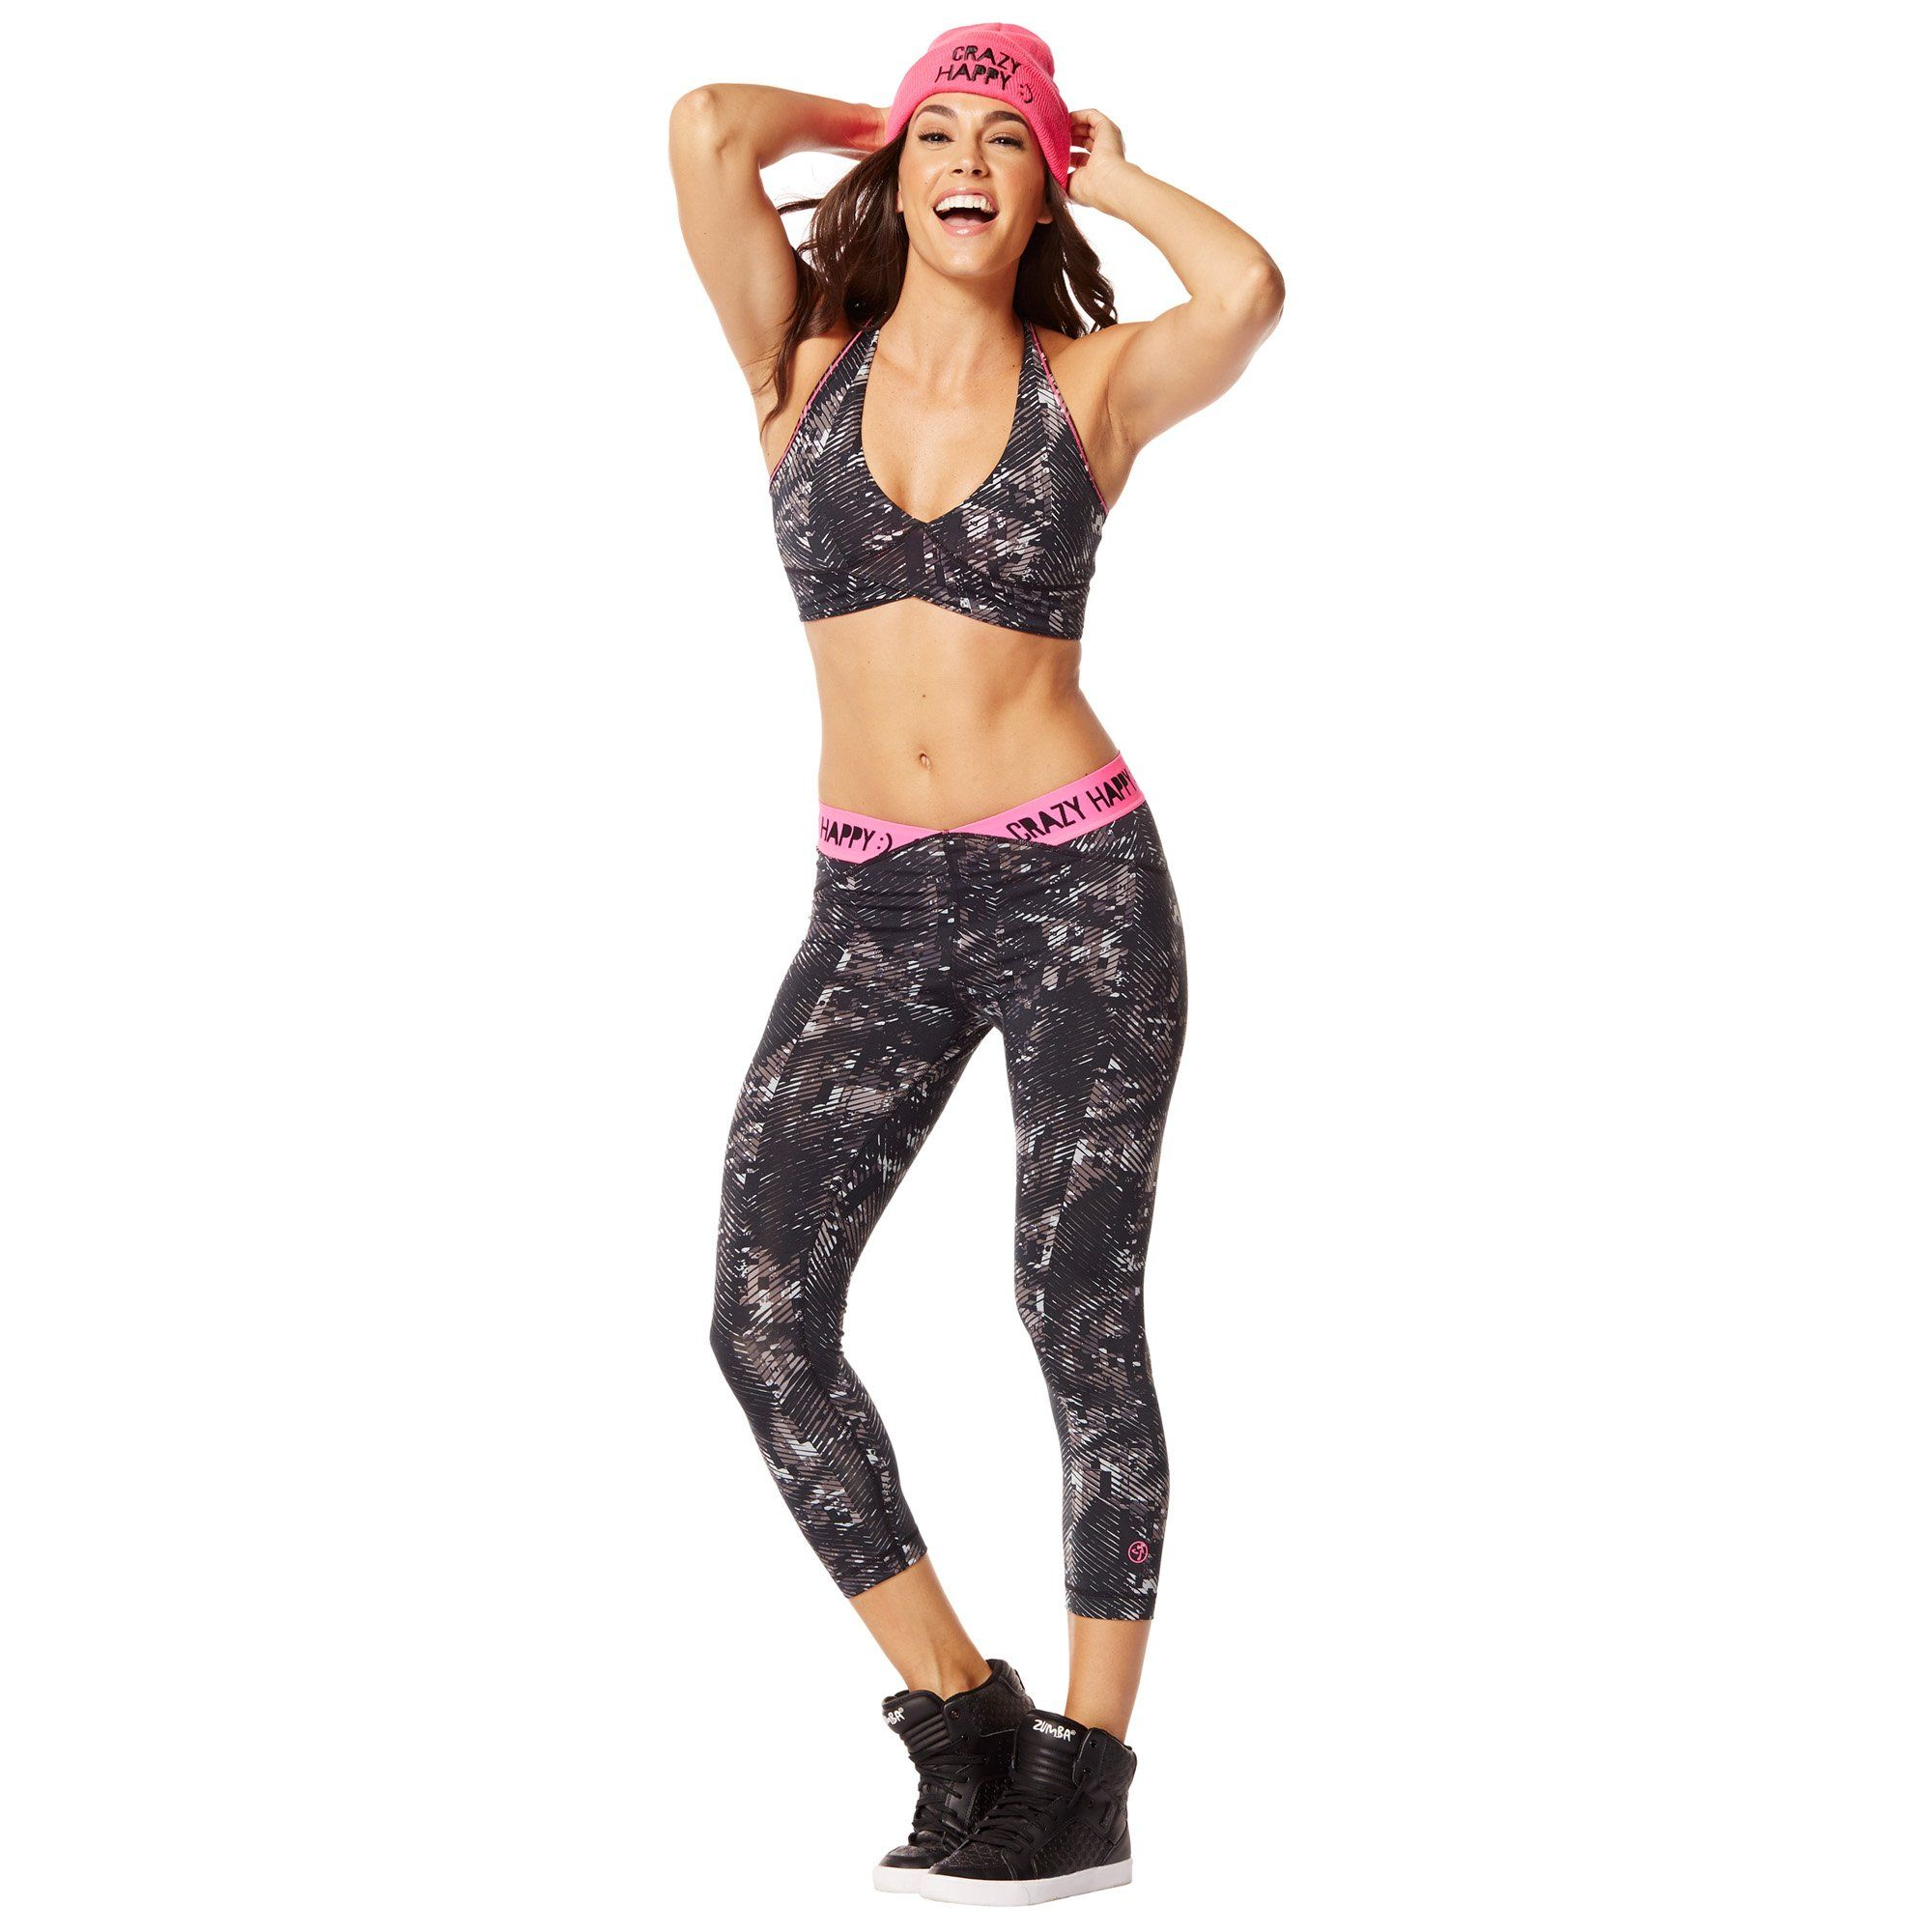 1f906baf1a984 Zumba Womens High Impact Workout Support Print Sports Bra    To view  further for this item